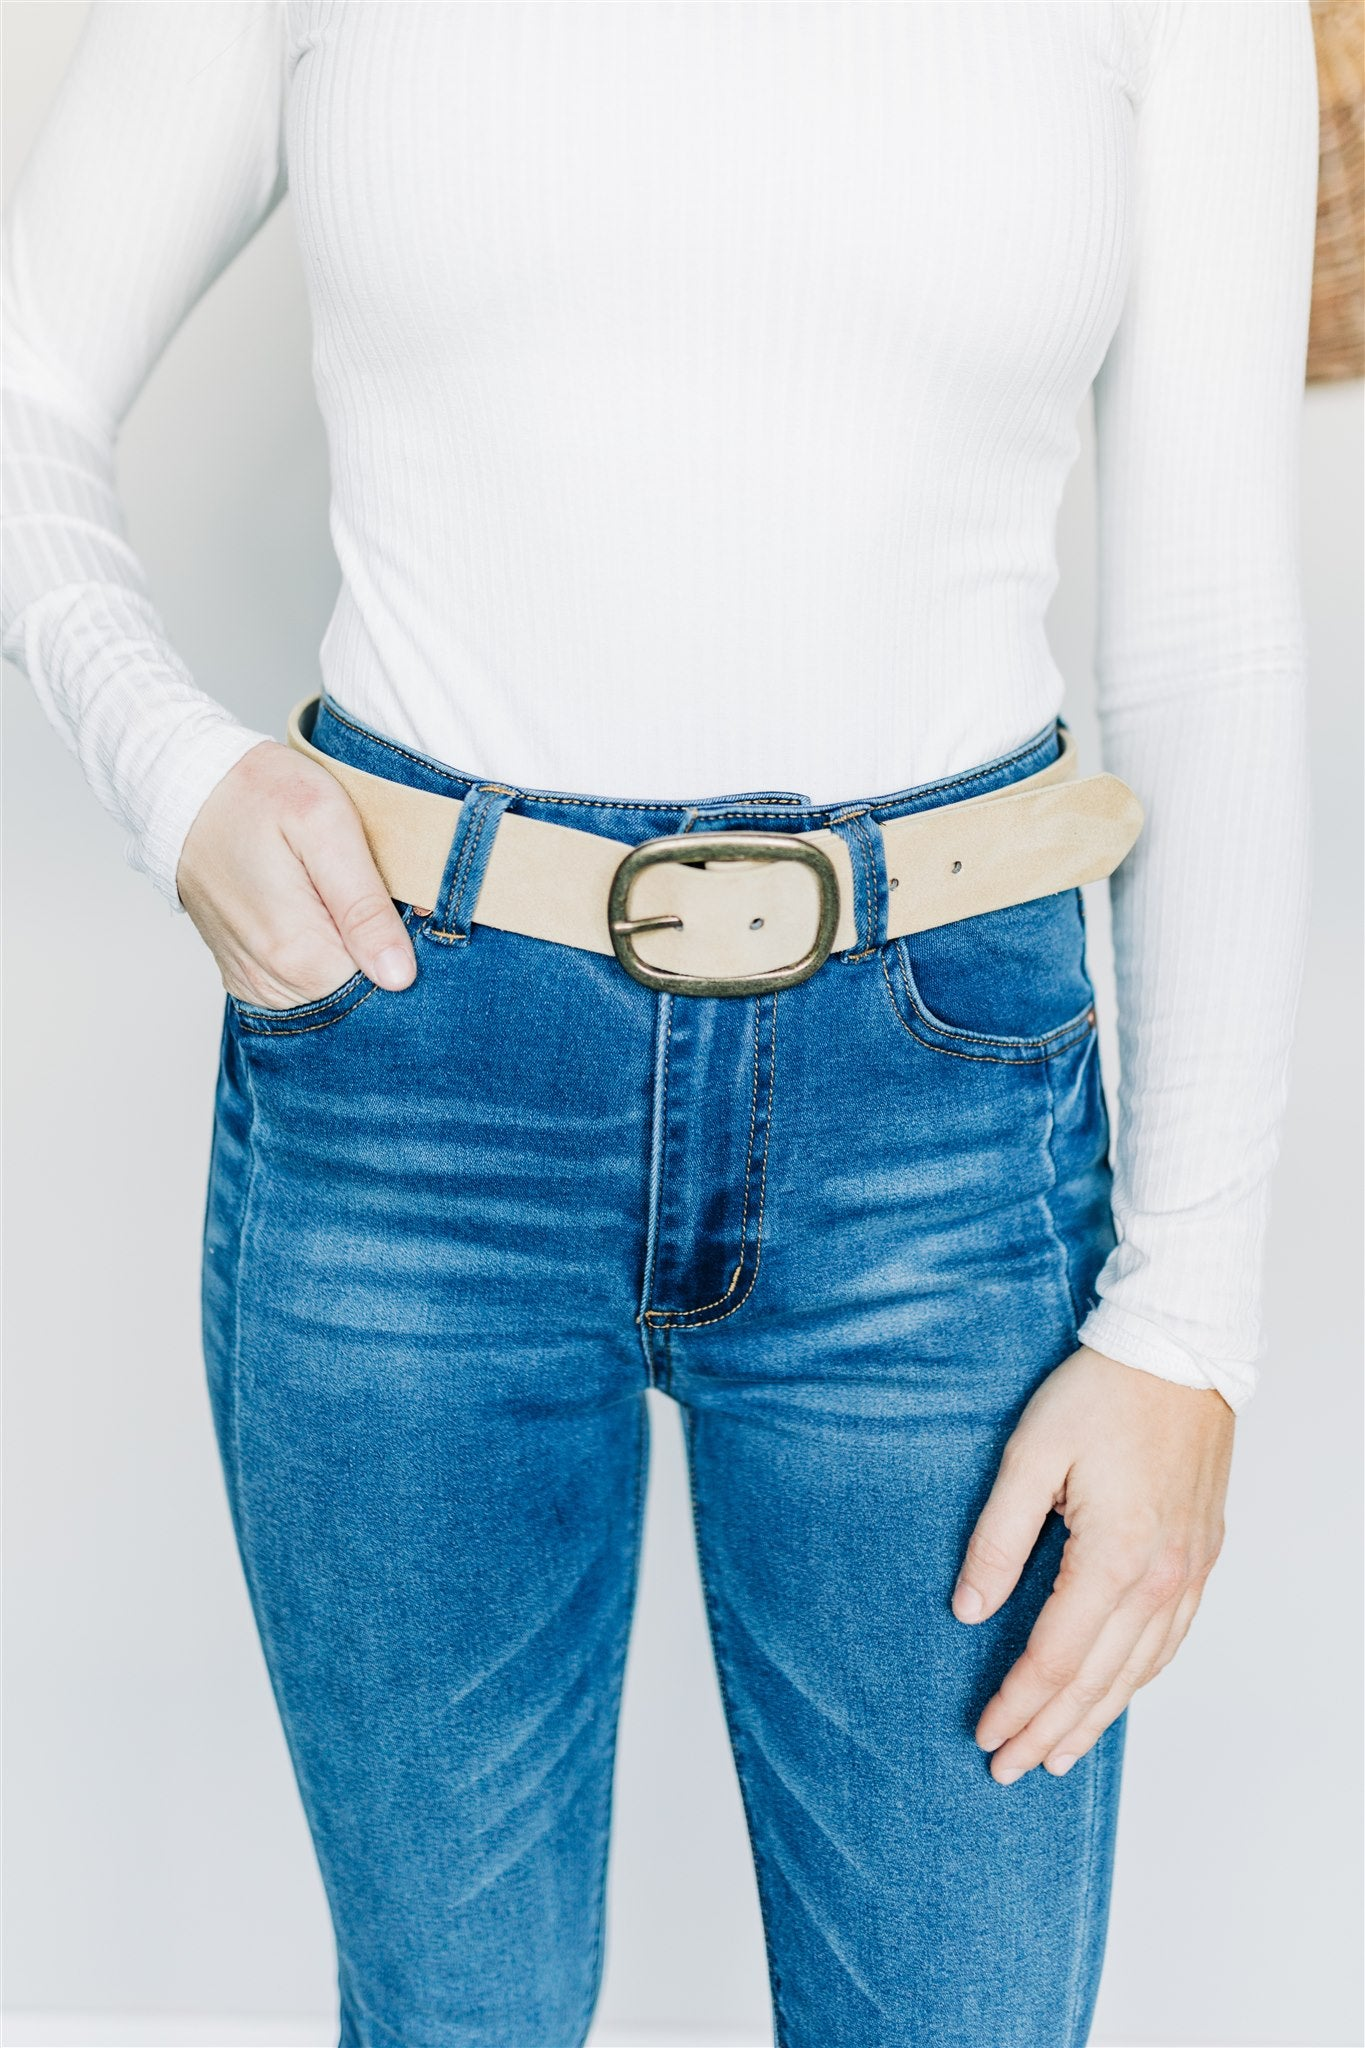 Buckle Up Belt - Beige